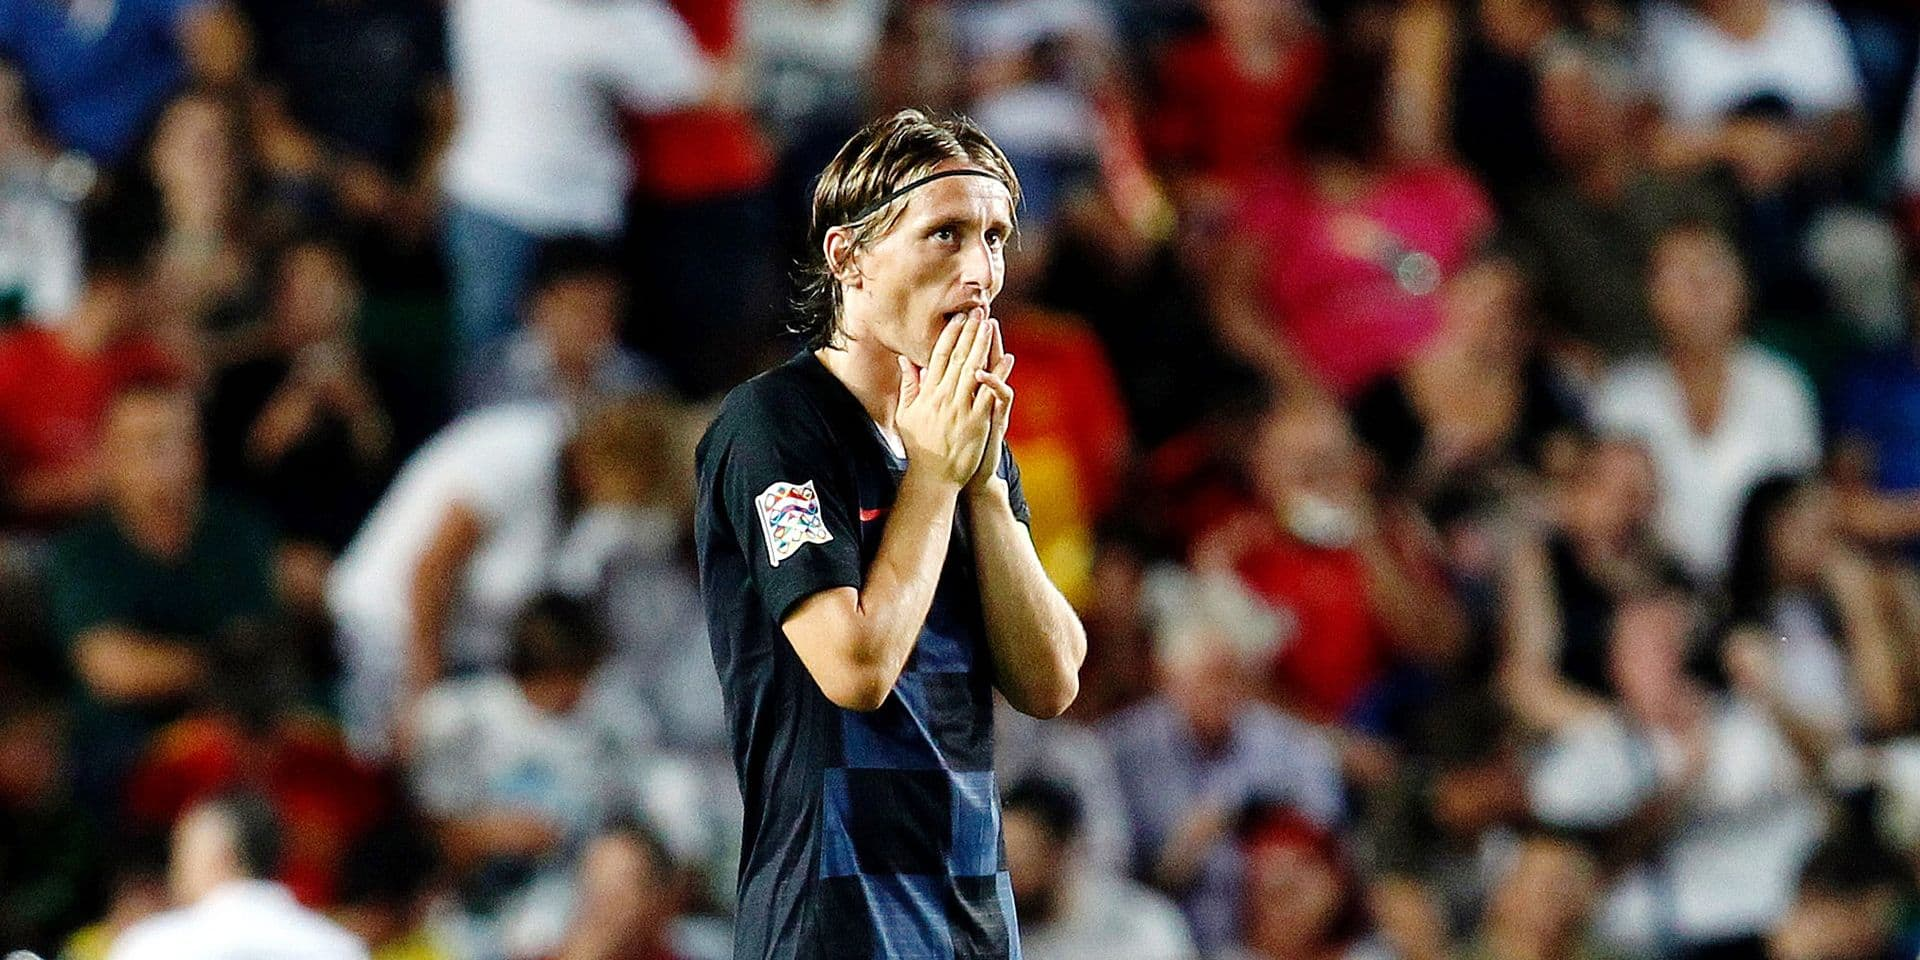 Croatia's Luka Modric reacts after Spain's Rodrigo Moreno scoring his side's fourth goal during the UEFA Nations League soccer match between Spain and Croatia at the Manuel Martinez Valero stadium in Elche, Spain, Tuesday Sept. 11, 2018. (AP Photo/Alberto Saiz)